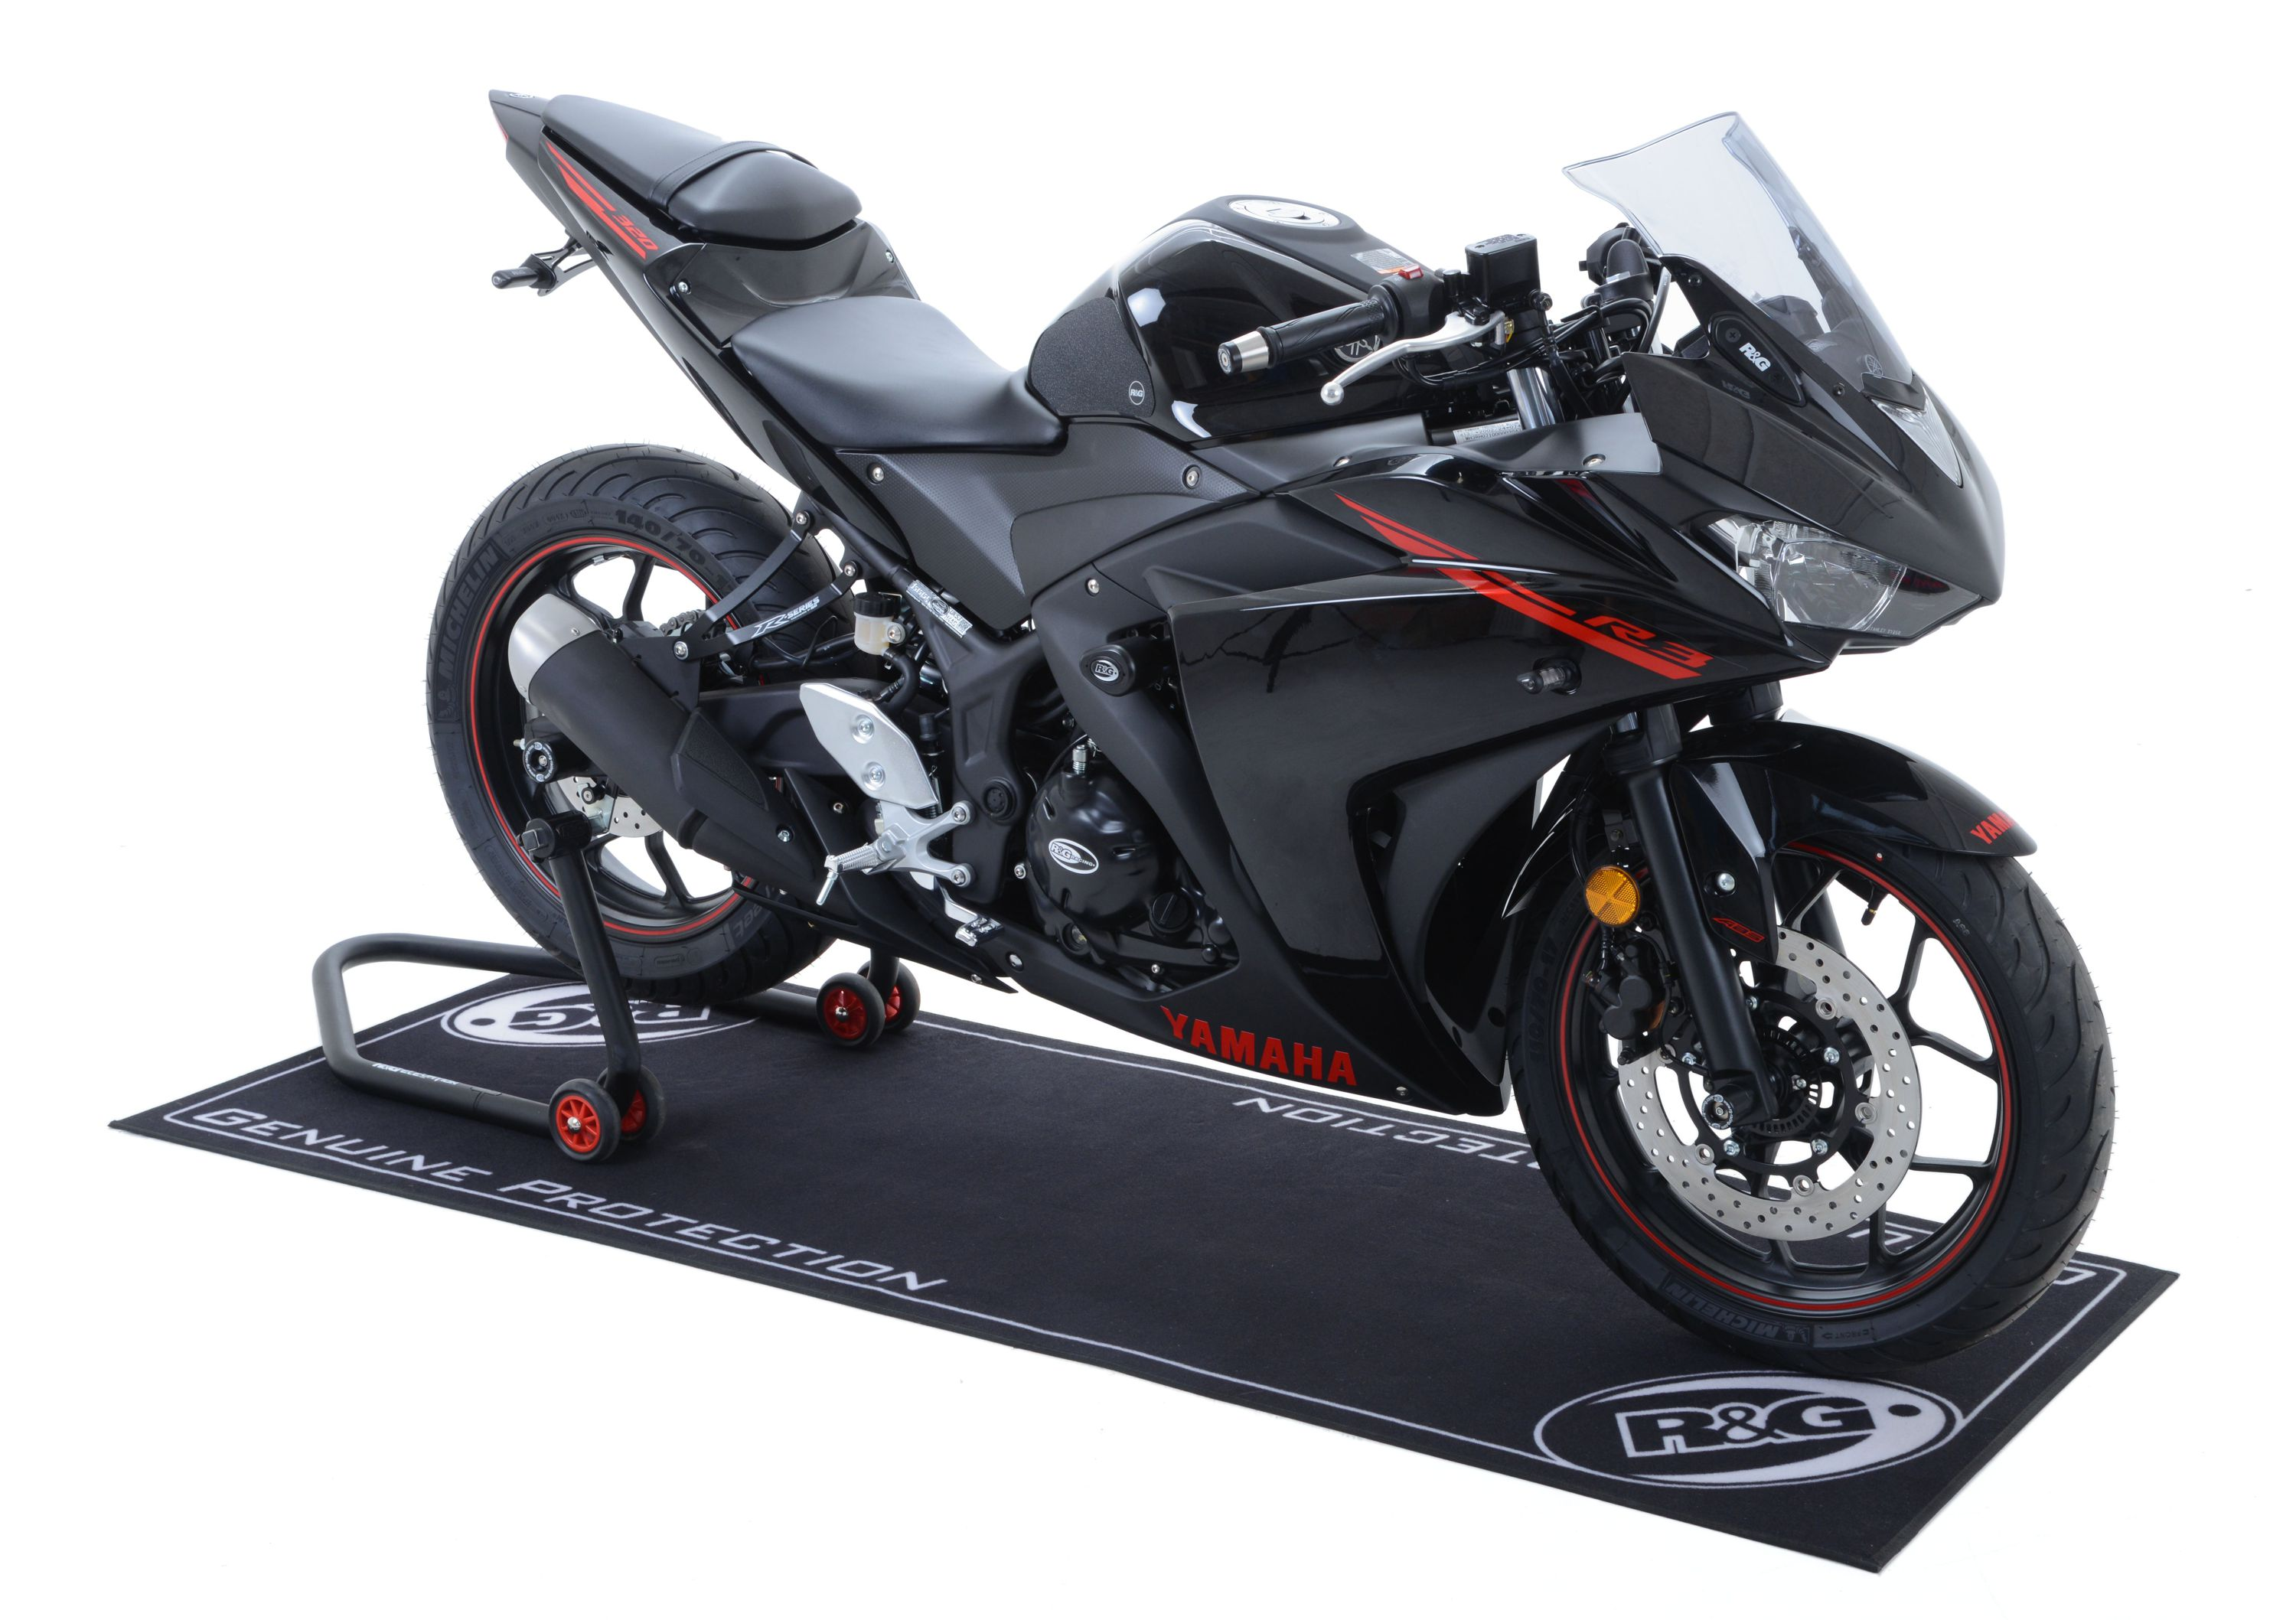 r g racing motorrad protektor powerparts hinz. Black Bedroom Furniture Sets. Home Design Ideas